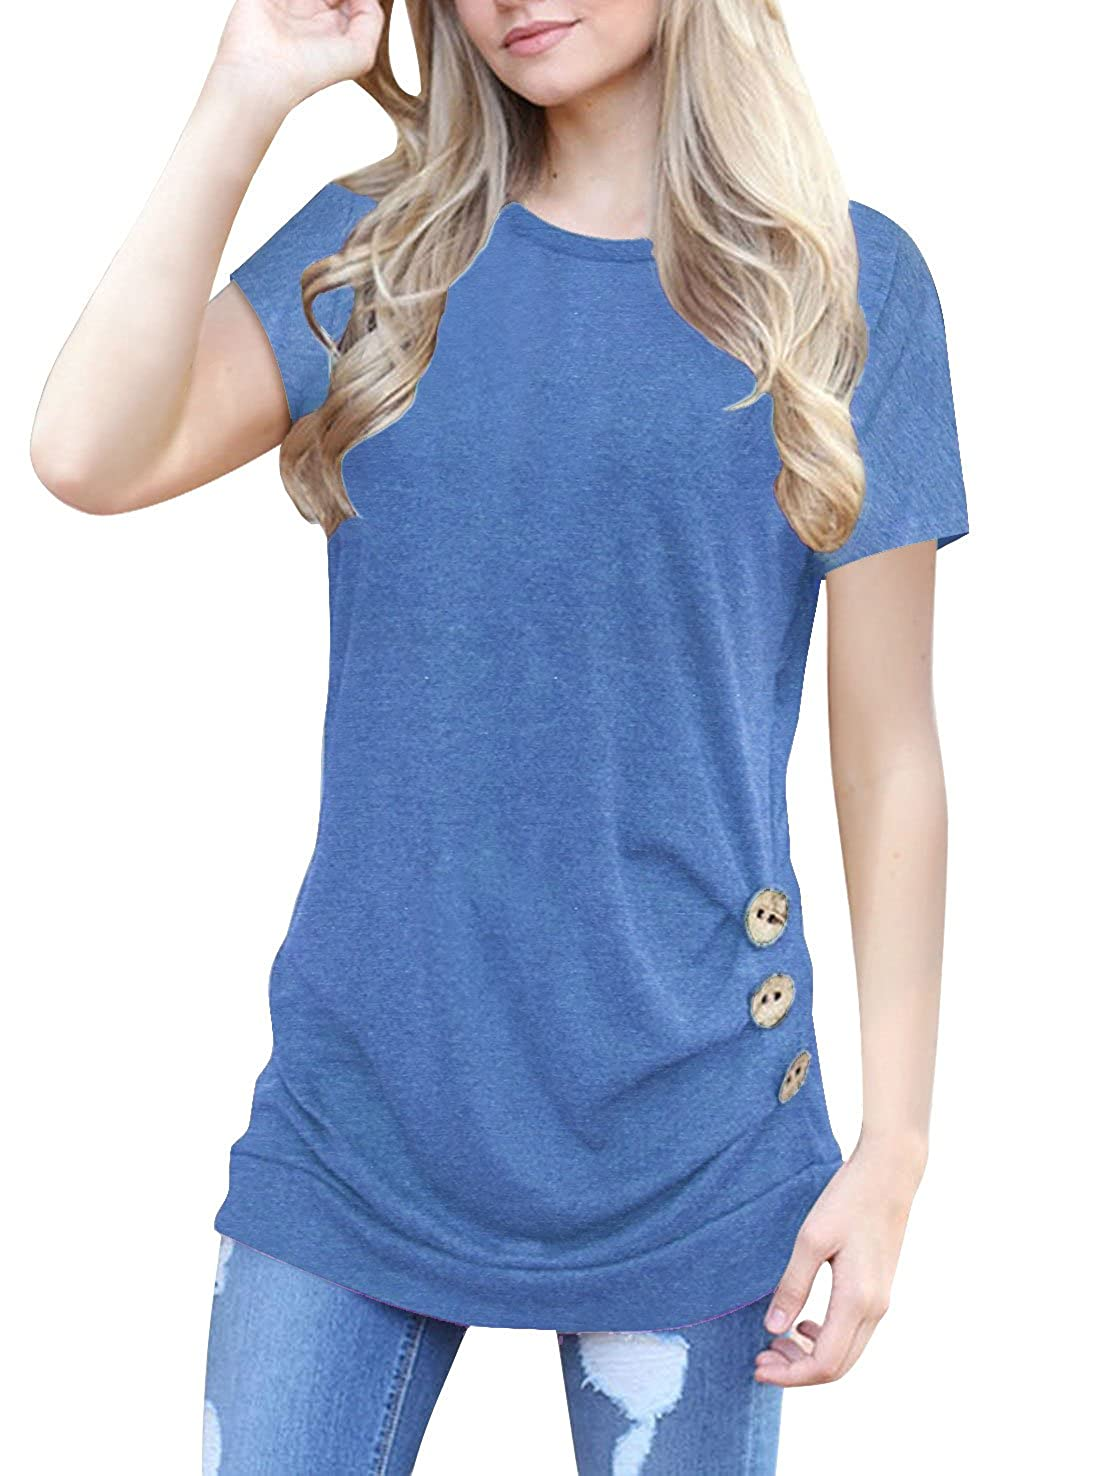 b1cb7df1ddb Heymiss Short Sleeve Shirts For Women Round Neck Tee Button Side Tunic Tops  S-XXL Material:35% cotton, 60% Polyester,5% Spandex Style:Brief,  Casual,Fashion